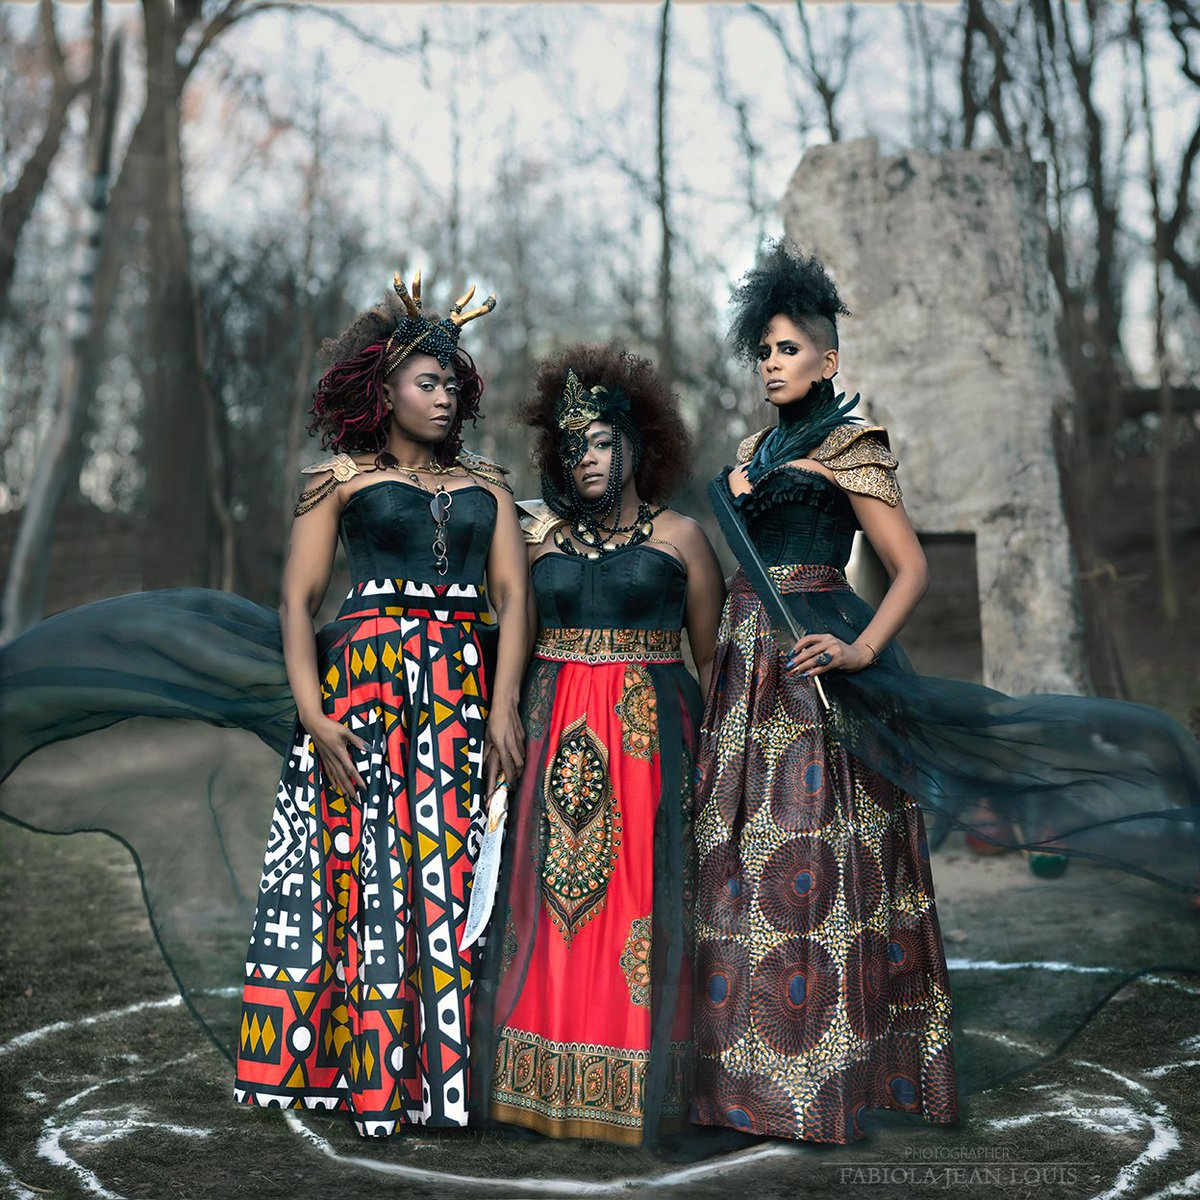 Column: Amplifying Voices For Black History Month https://t.co/dnScMHcDK0 #pagan #BlackHistoryMonth https://t.co/ipi0TCncnm